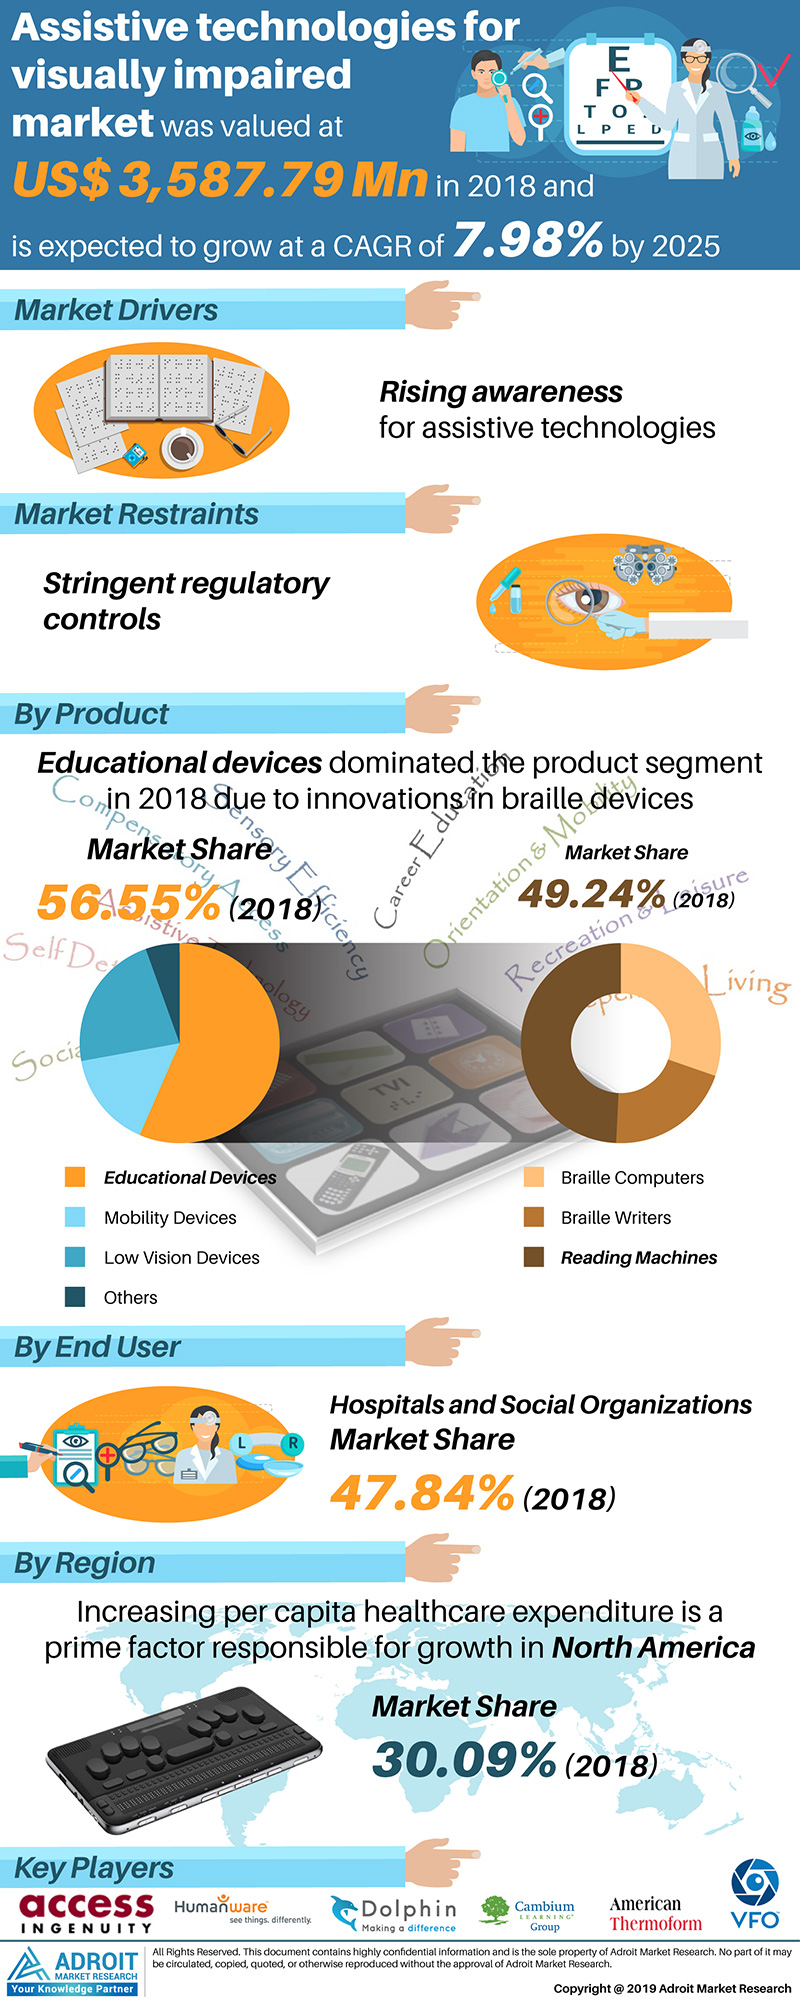 Global Assistive Technologies for Visually Impaired Market Size 2018 By Product, Application, Region and Forecast 2019 to 2025